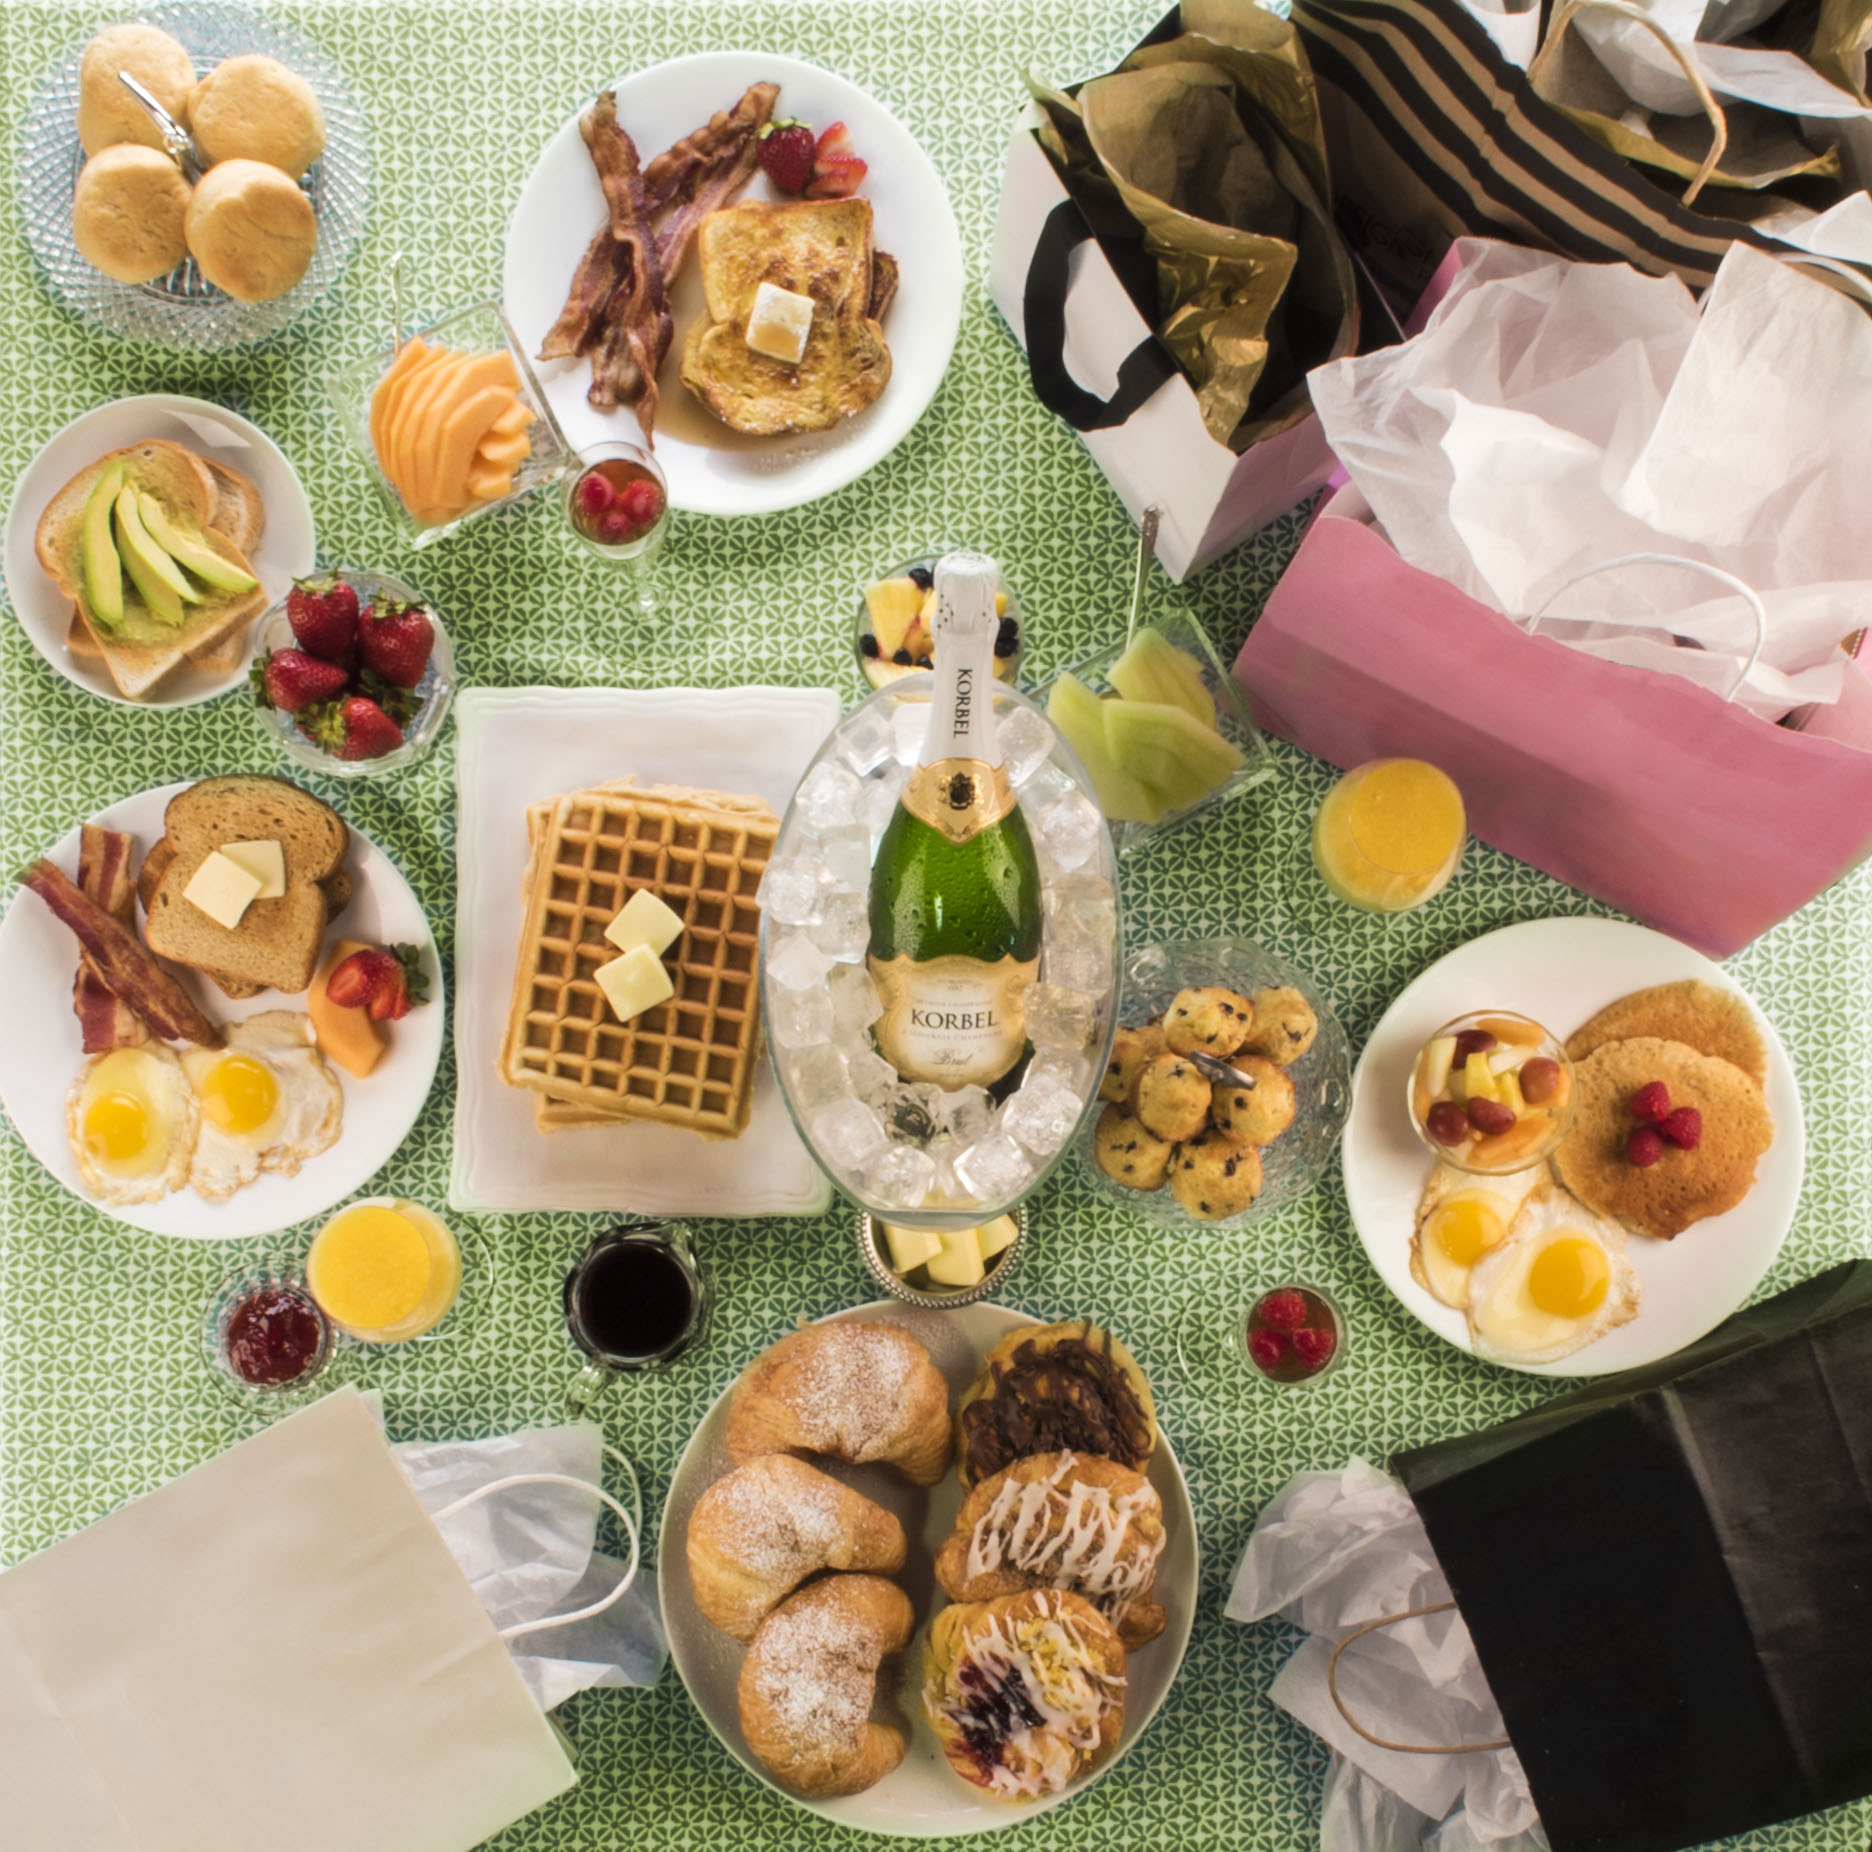 Black-Friday-Brunch-Lifestyle-3-7ad7a2e90699bb6faaedc9b6b61a5f915ab64798